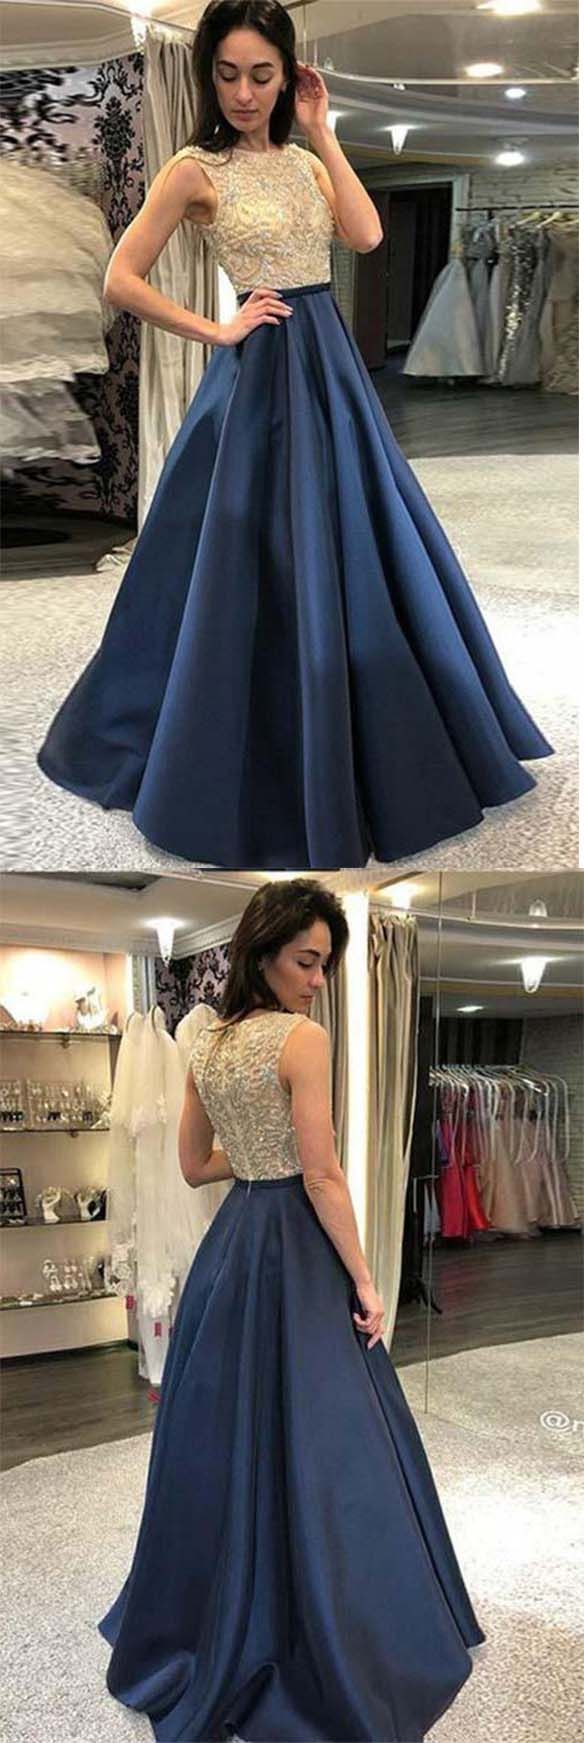 Elegant prom dressesnavy blue prom dresses with beadingfashion